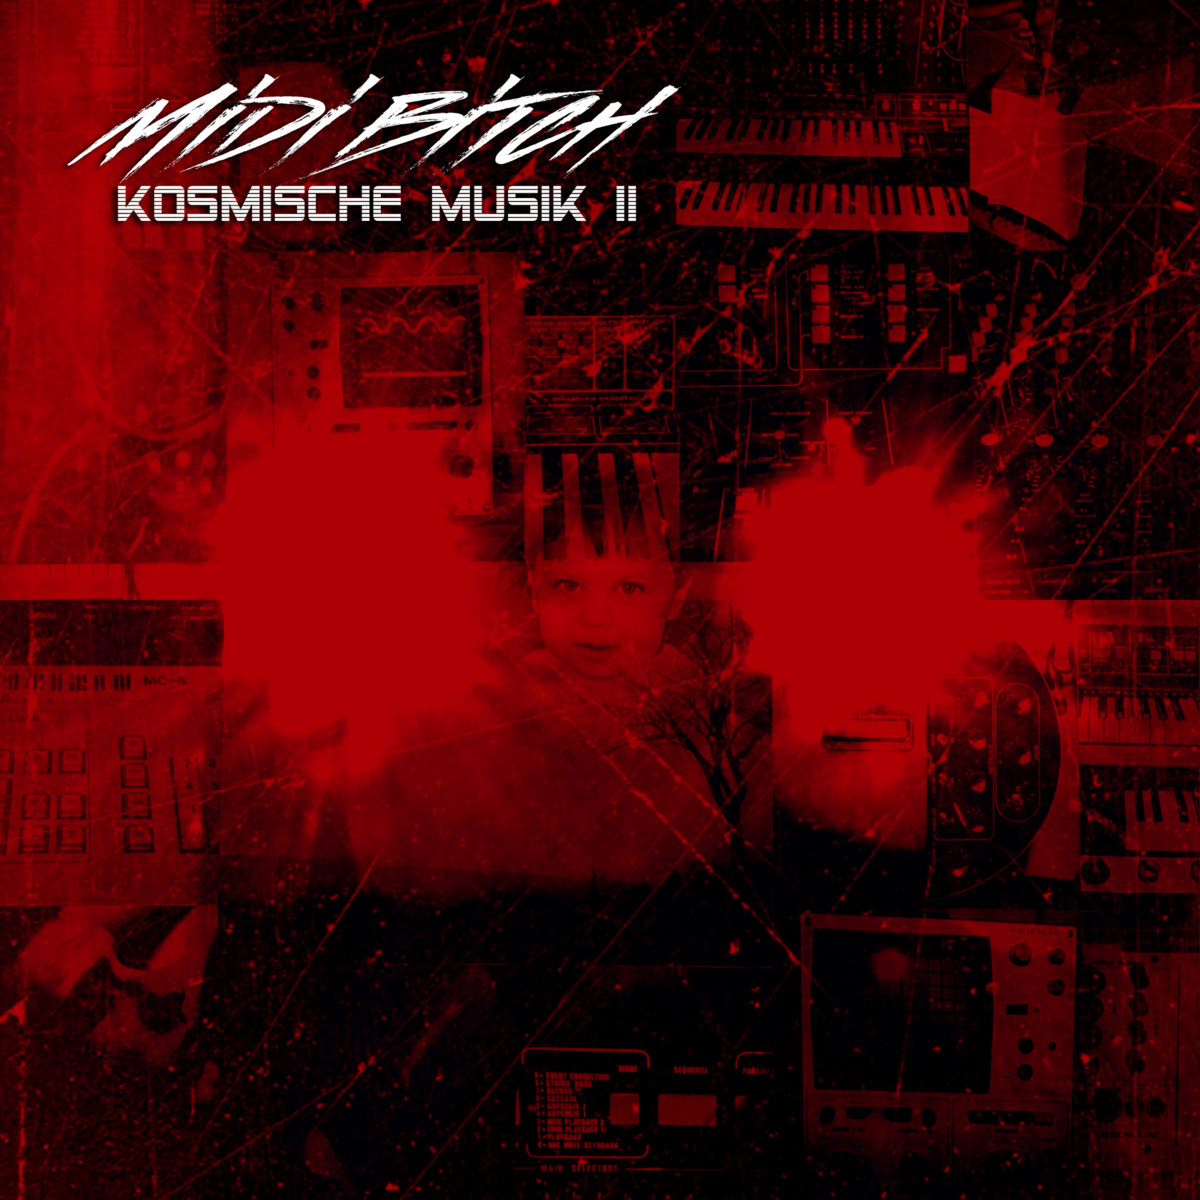 KOSMISCHE MUSIK 2 by MiDi BiTCH